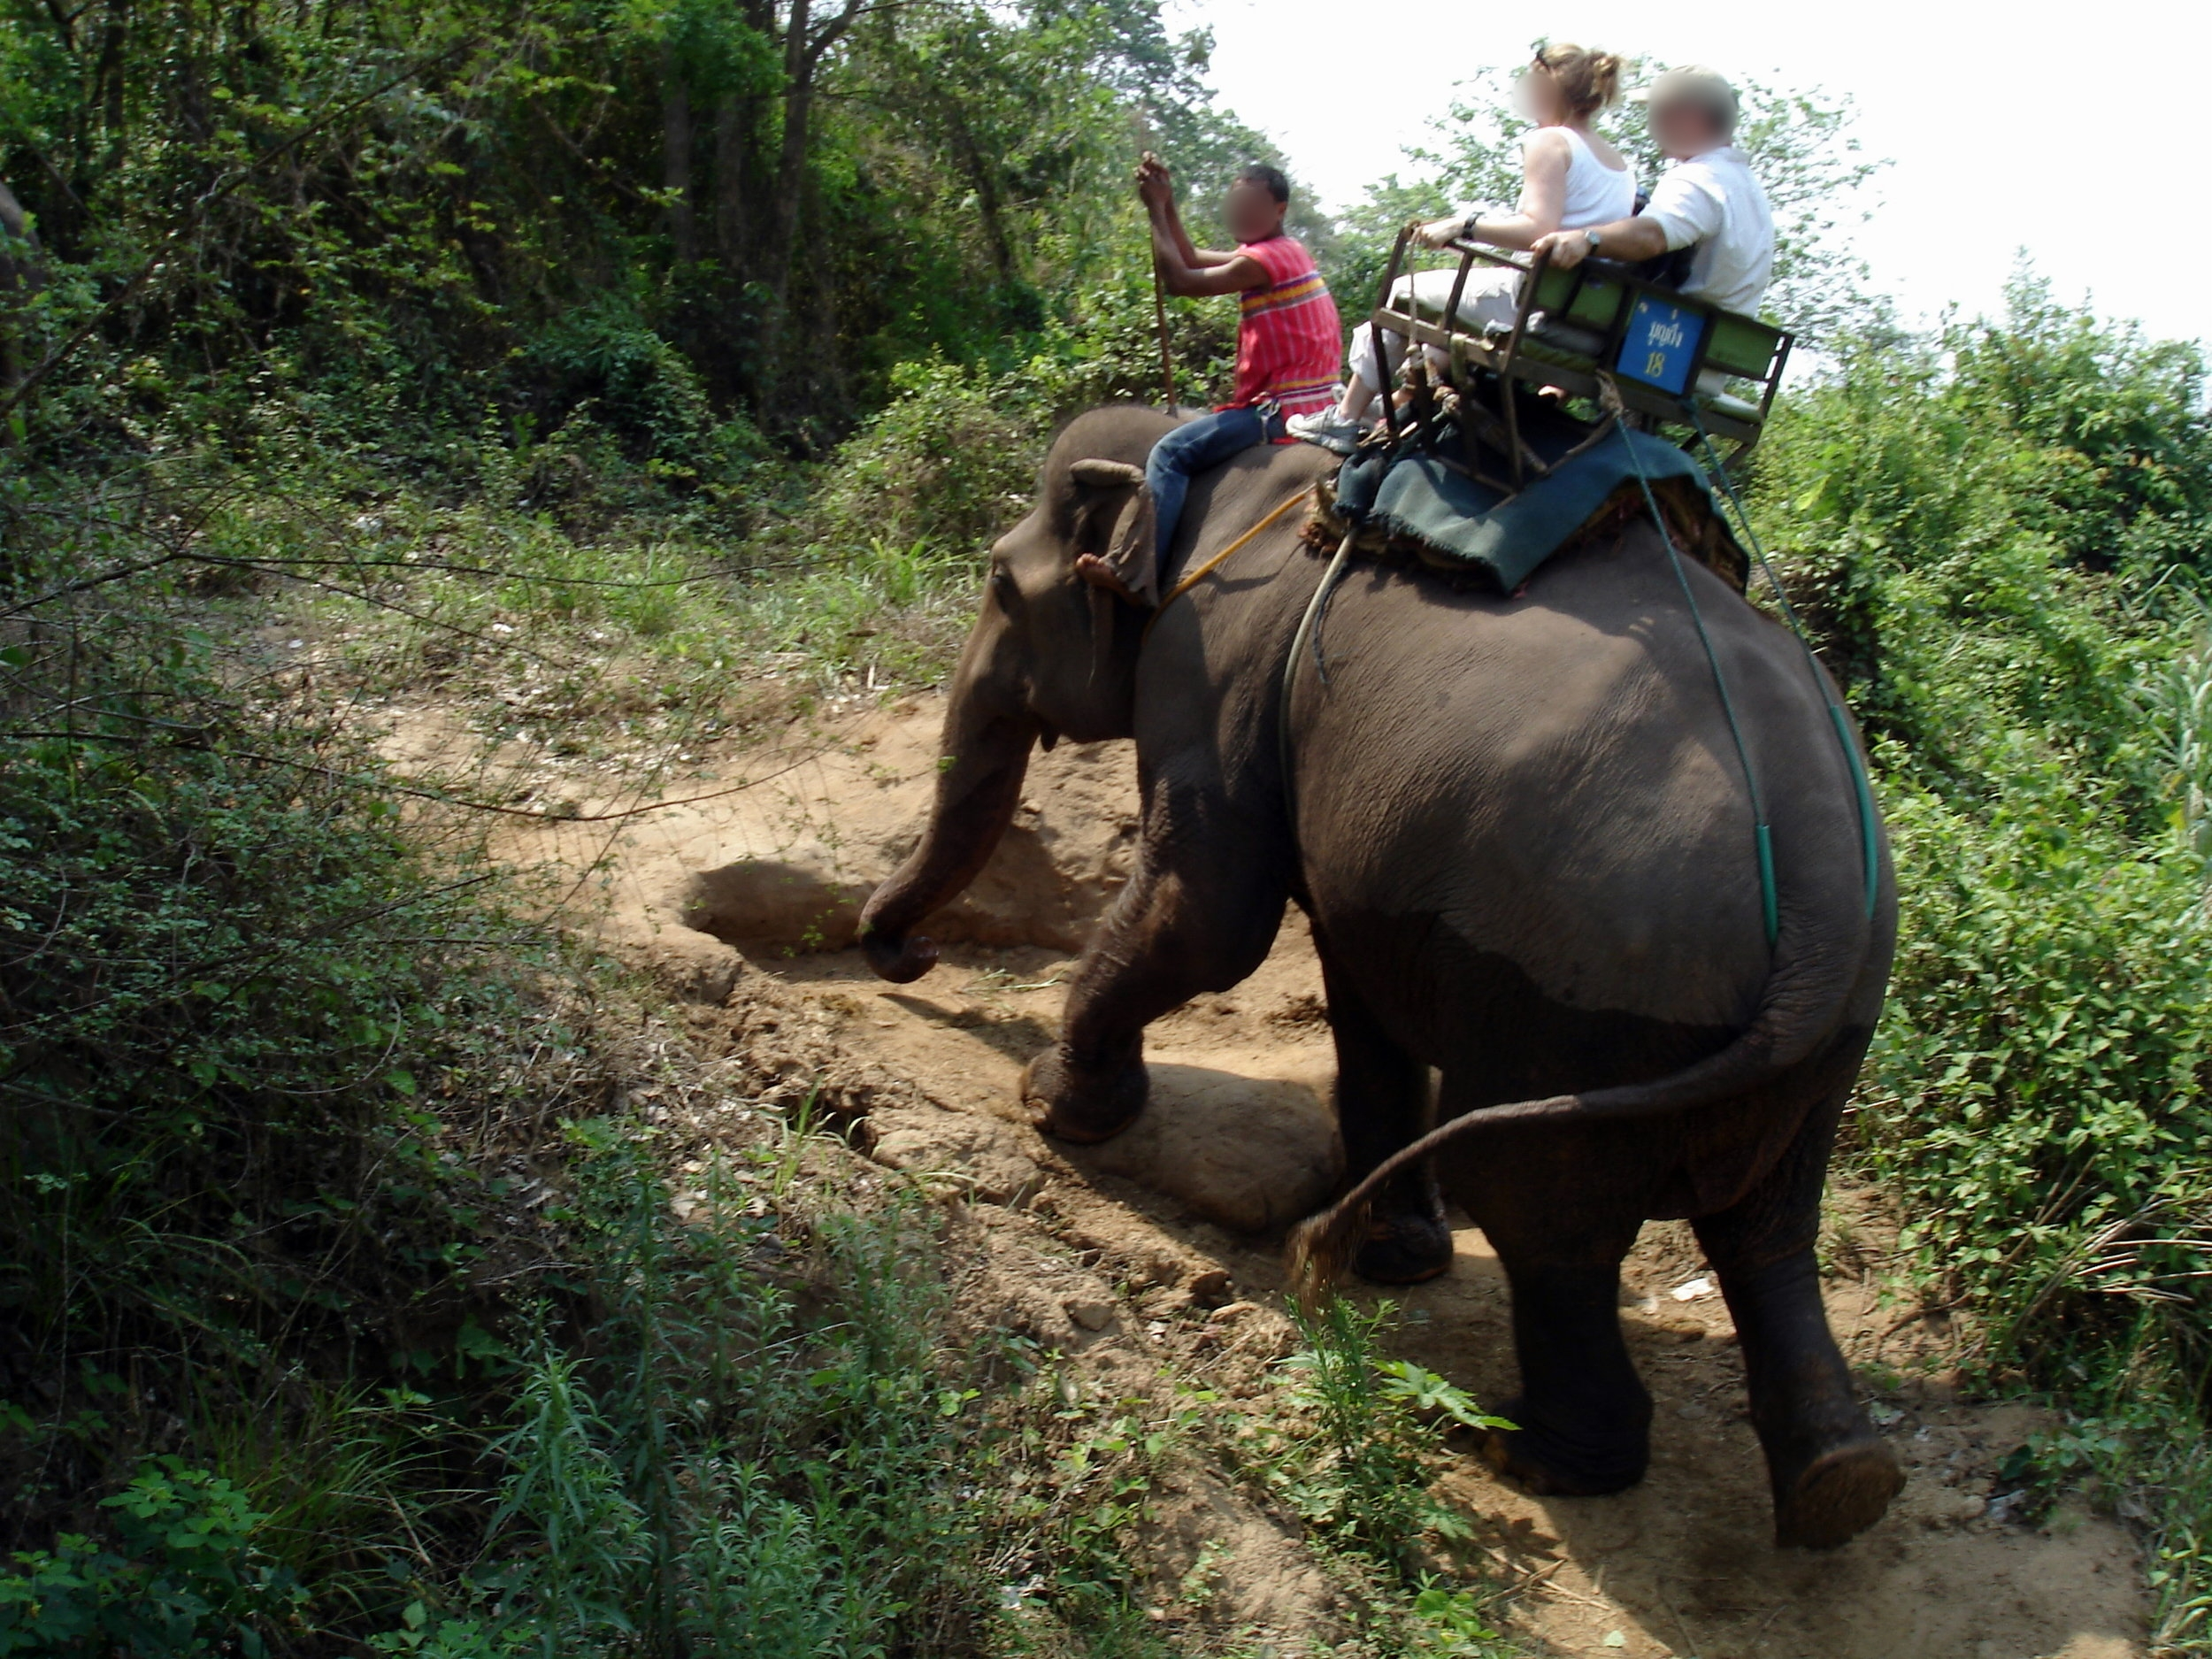 Elephant trekking causes spinal deformity in elephants who are also abused behind the scenes